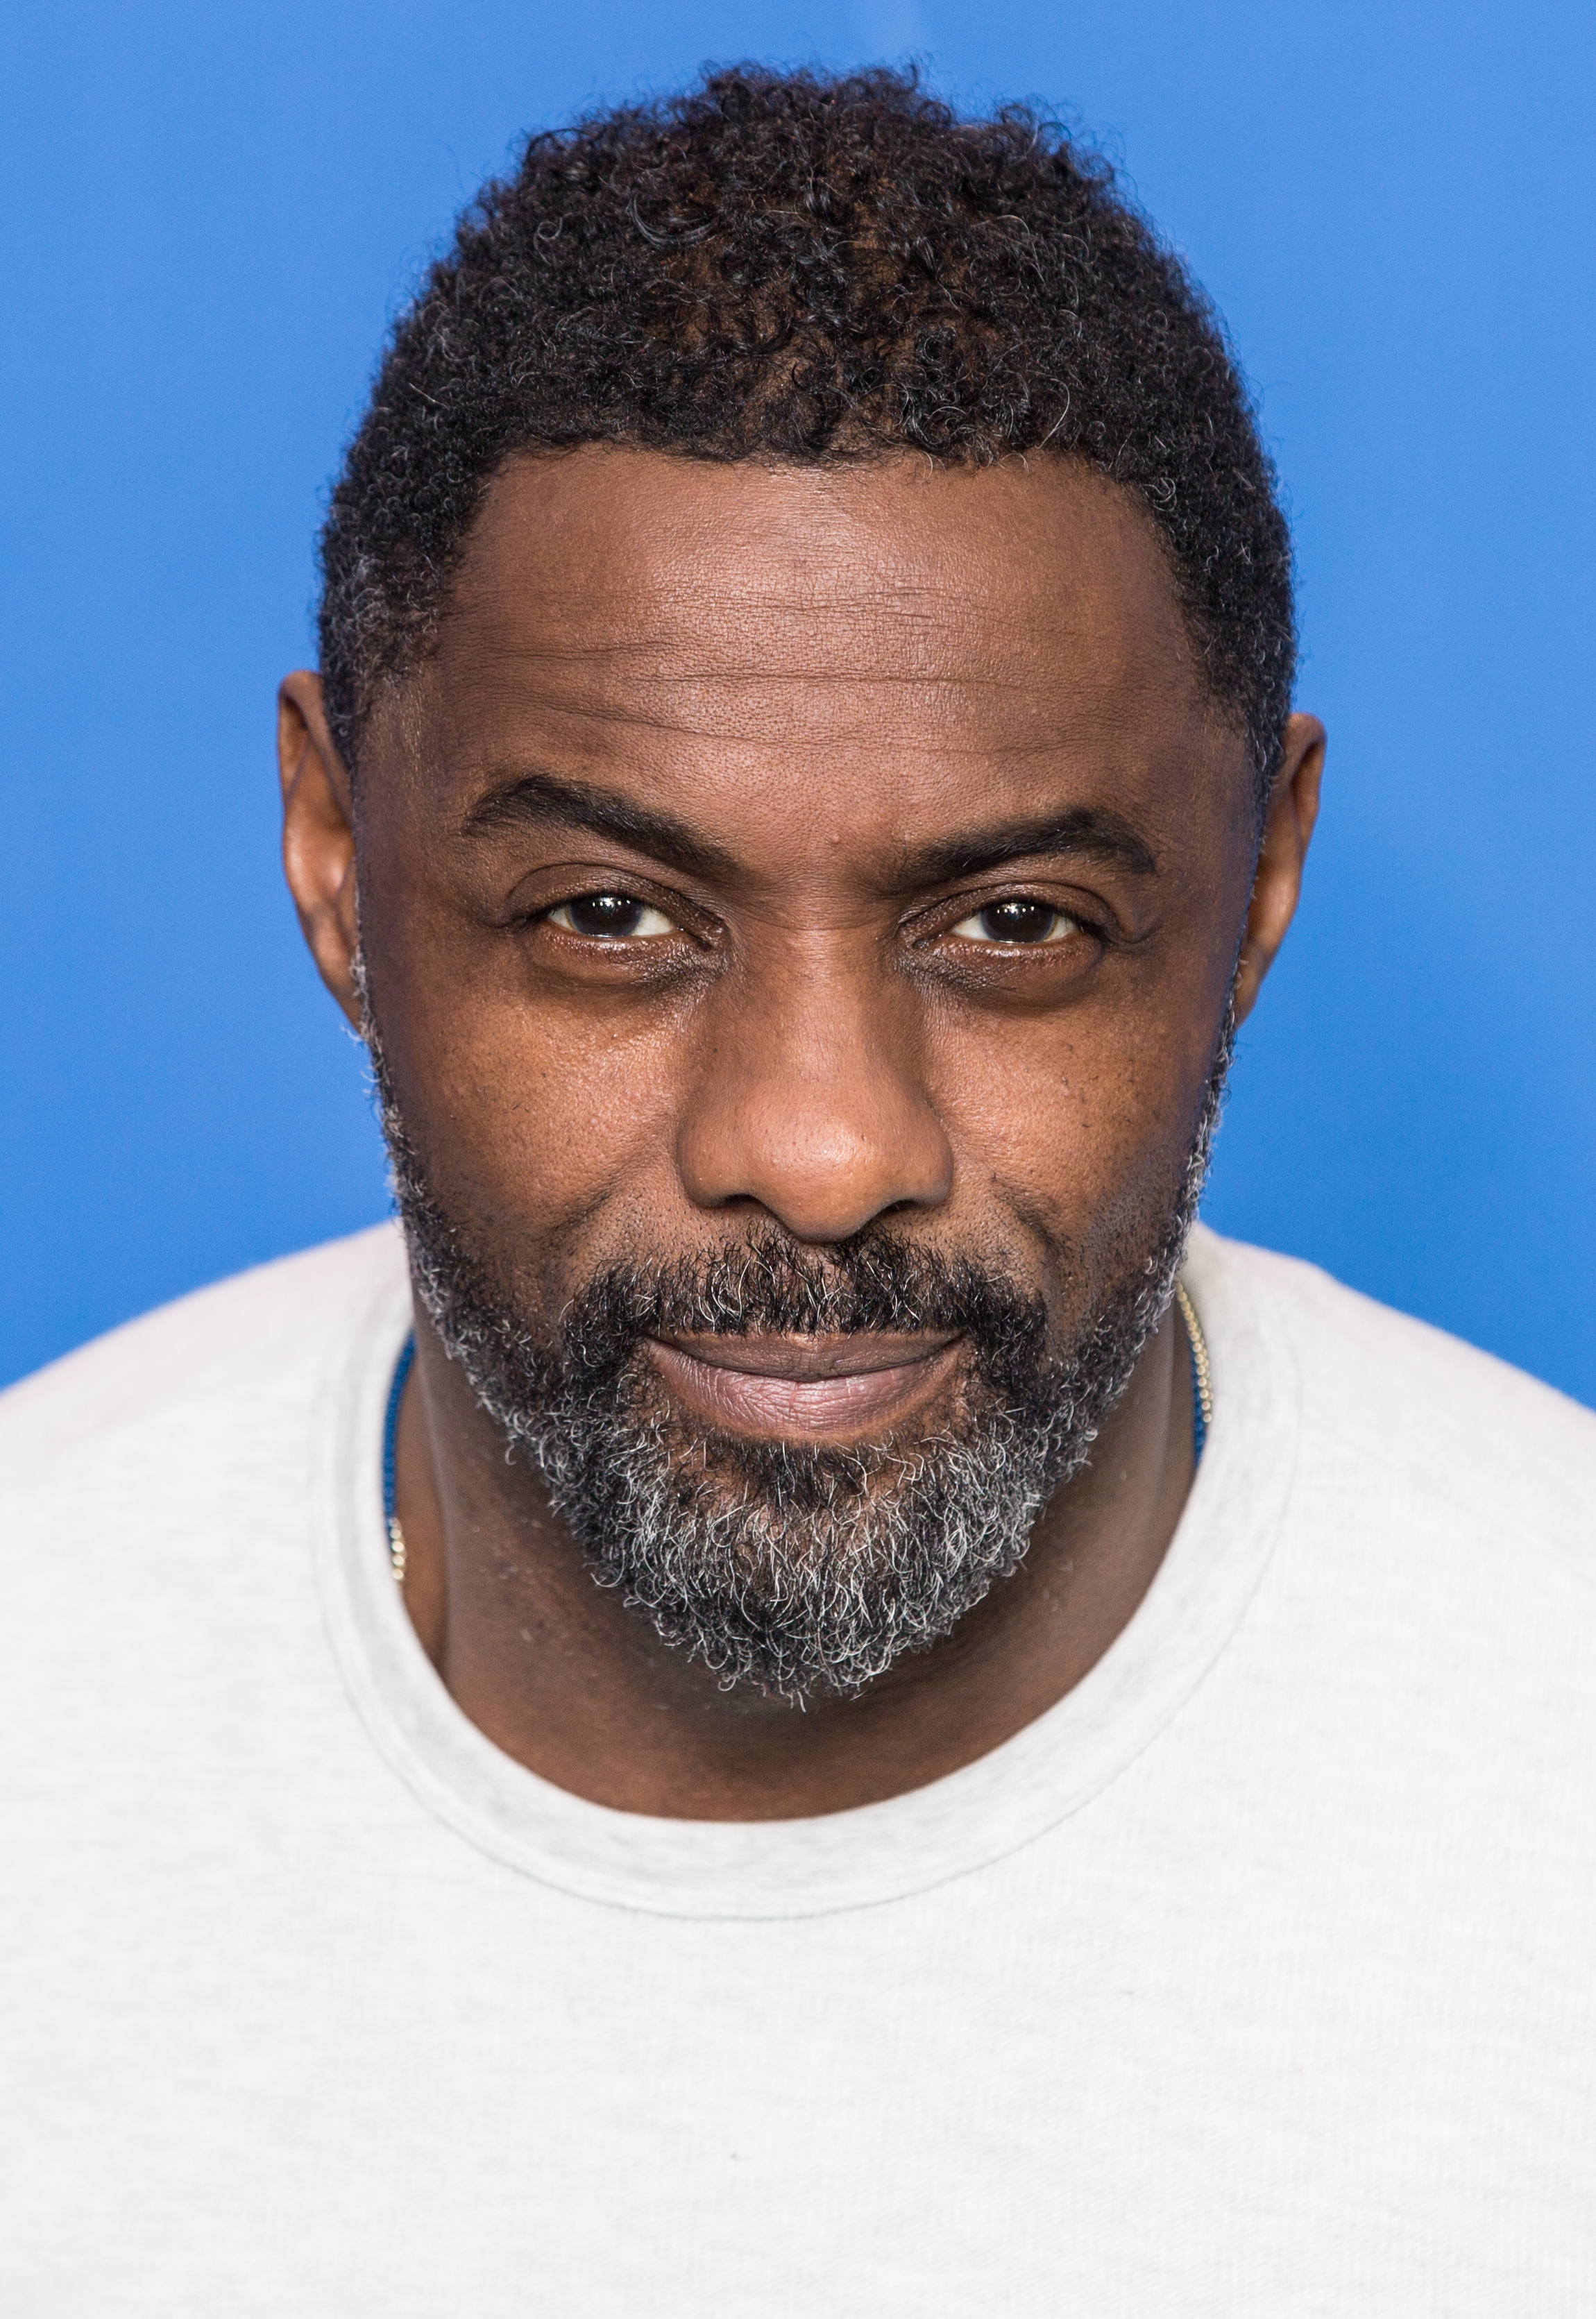 The 46-year old son of father Winston Elba and mother Eve Elba Idris Elba in 2018 photo. Idris Elba earned a  million dollar salary - leaving the net worth at 12 million in 2018